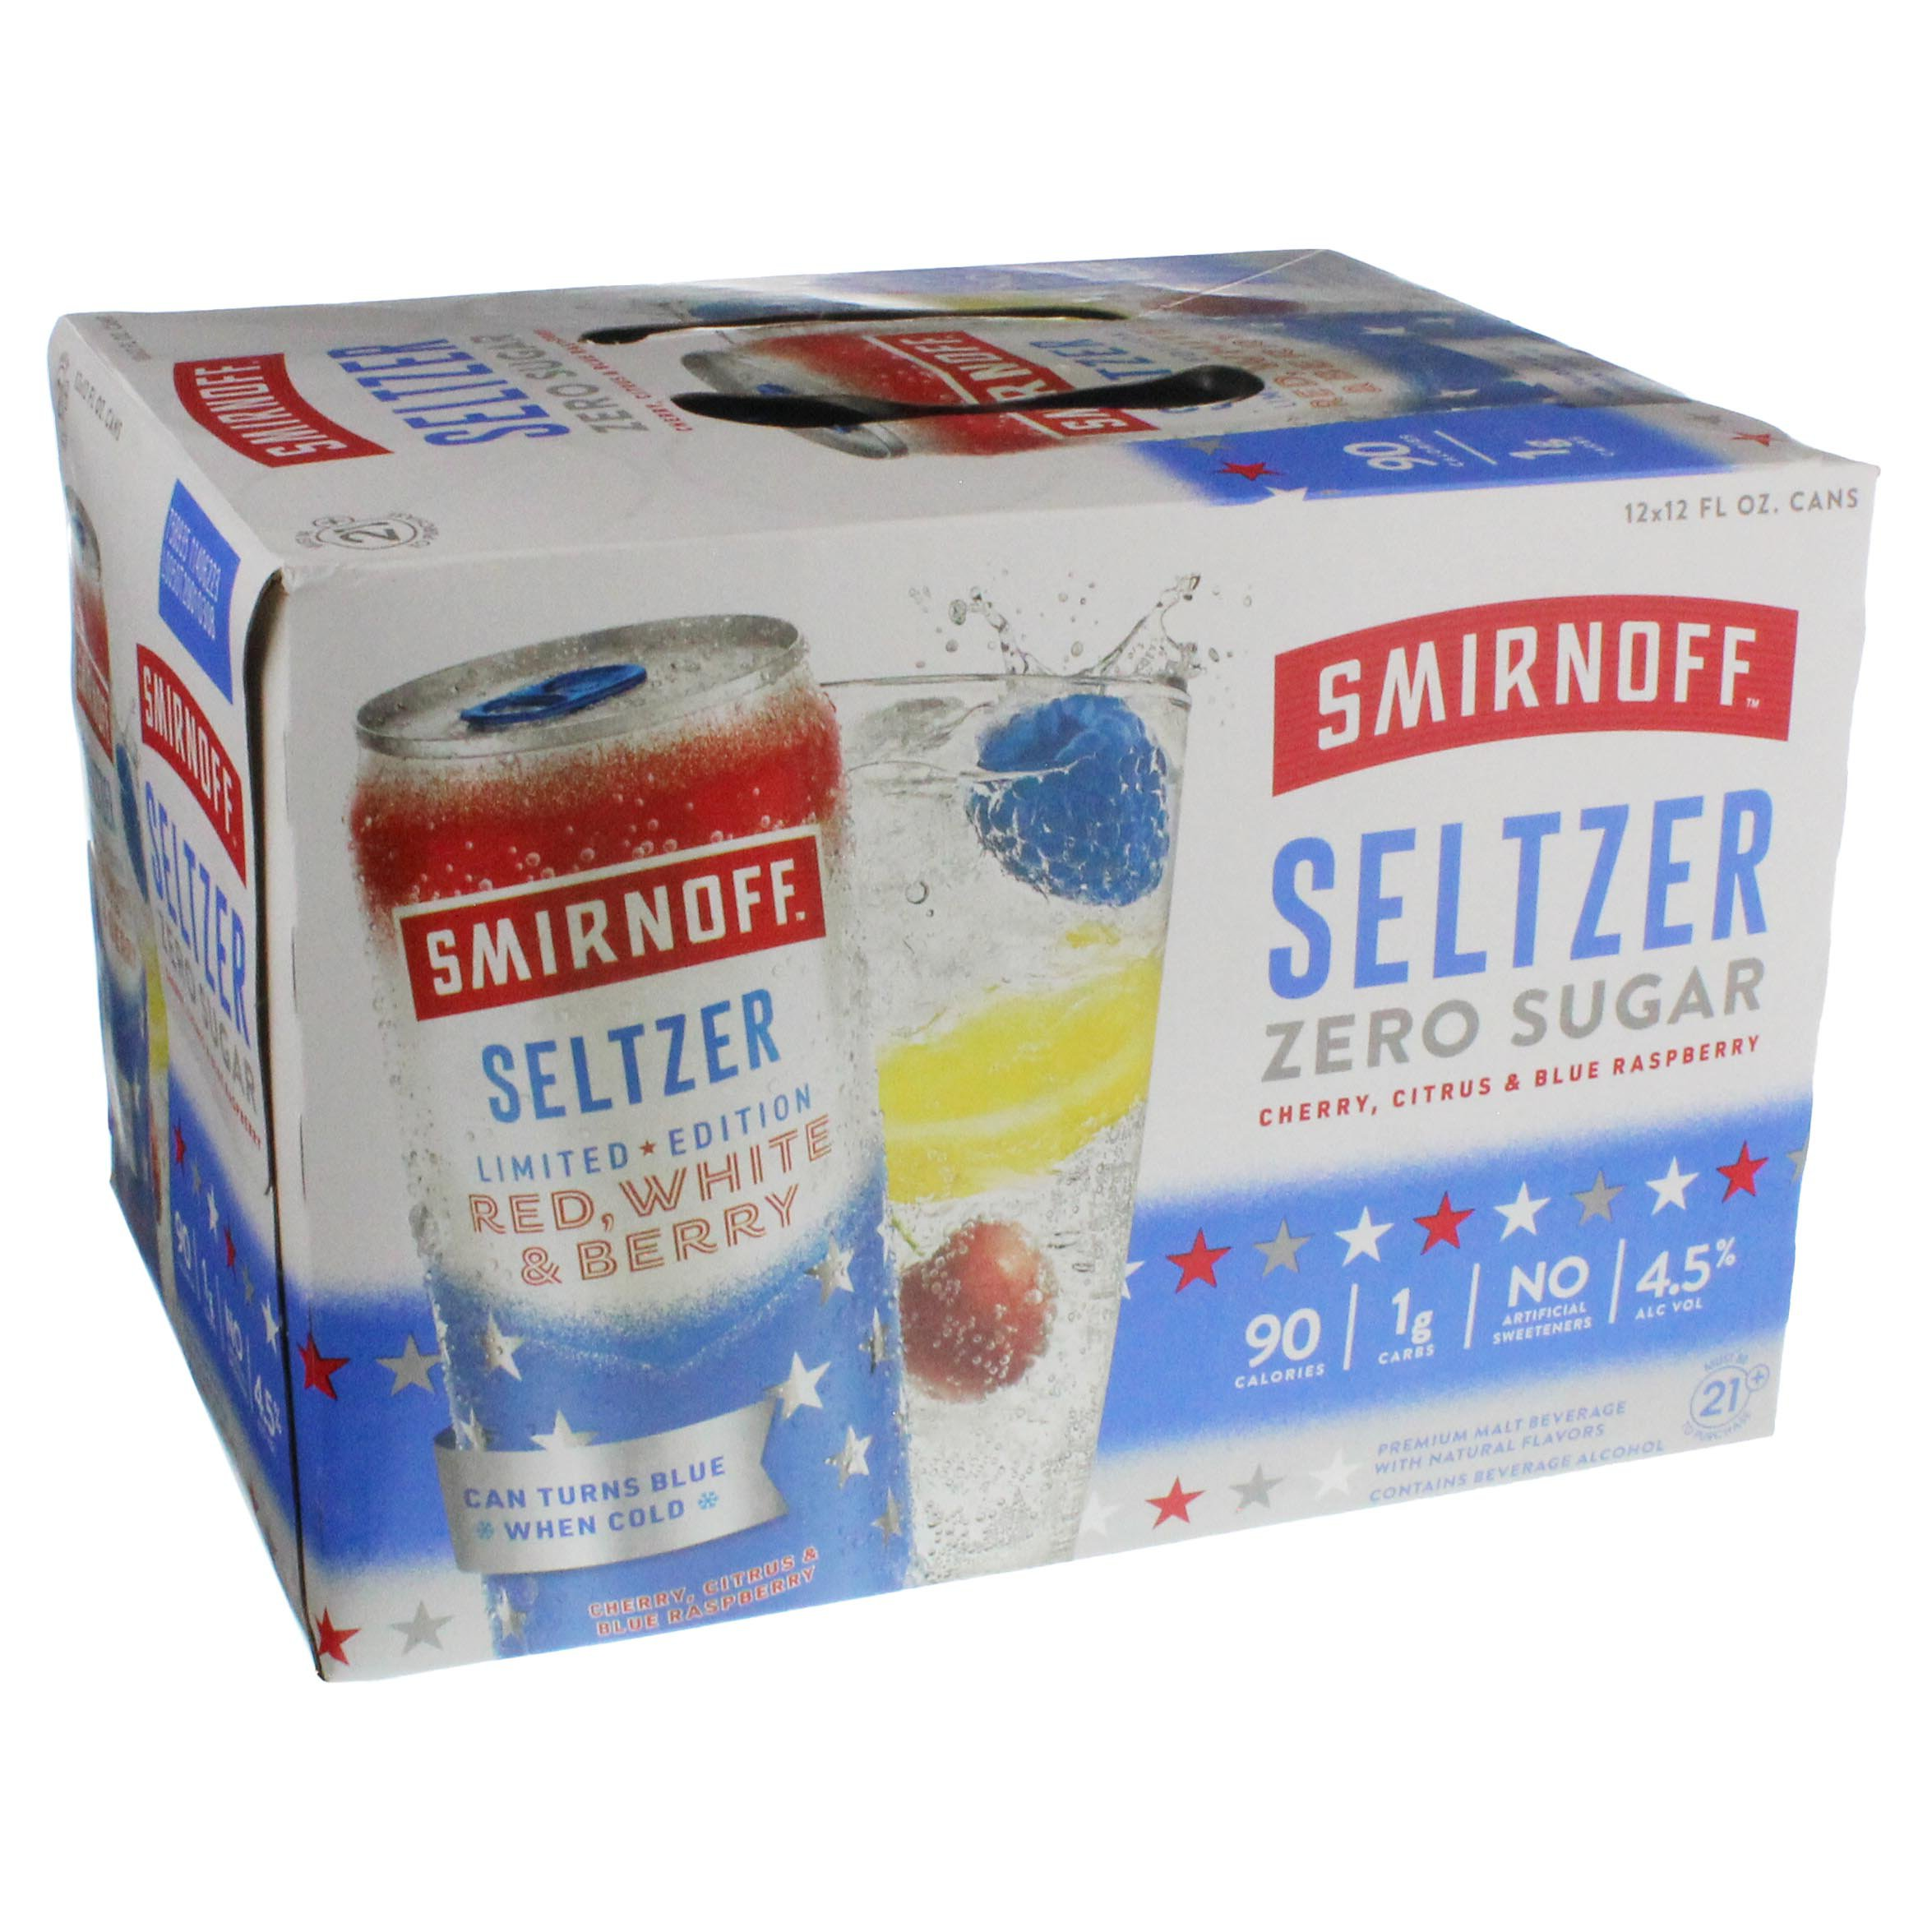 Smirnoff Red, White & Berry Seltzer 12 oz Cans ‑ Shop Malt Beverages &  Coolers at H‑E‑B